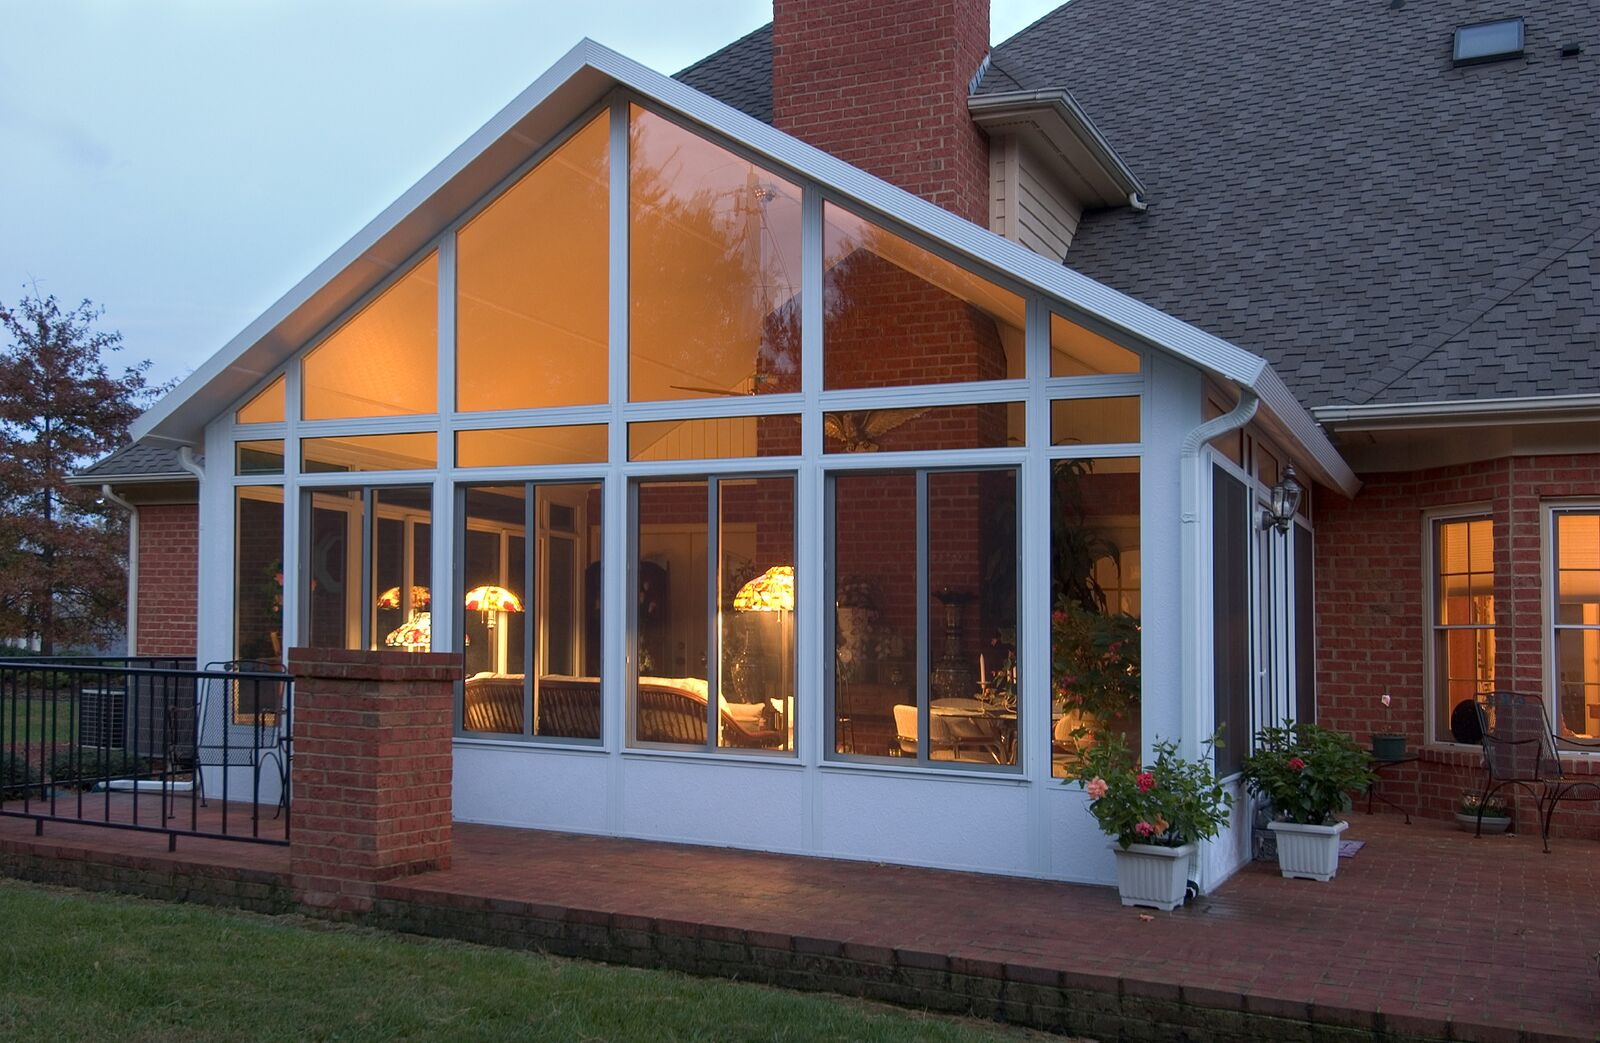 California Style of Sunroom